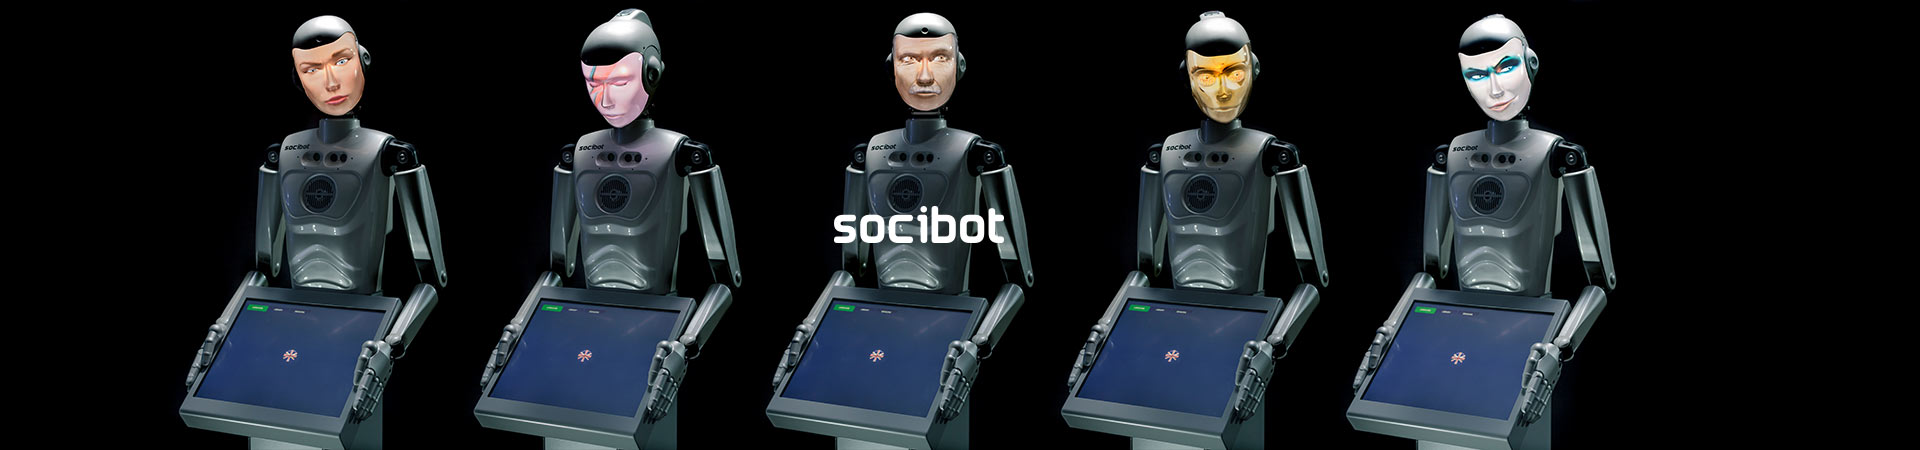 Semi Humanoid Robot 5 SociBots Engineered Arts